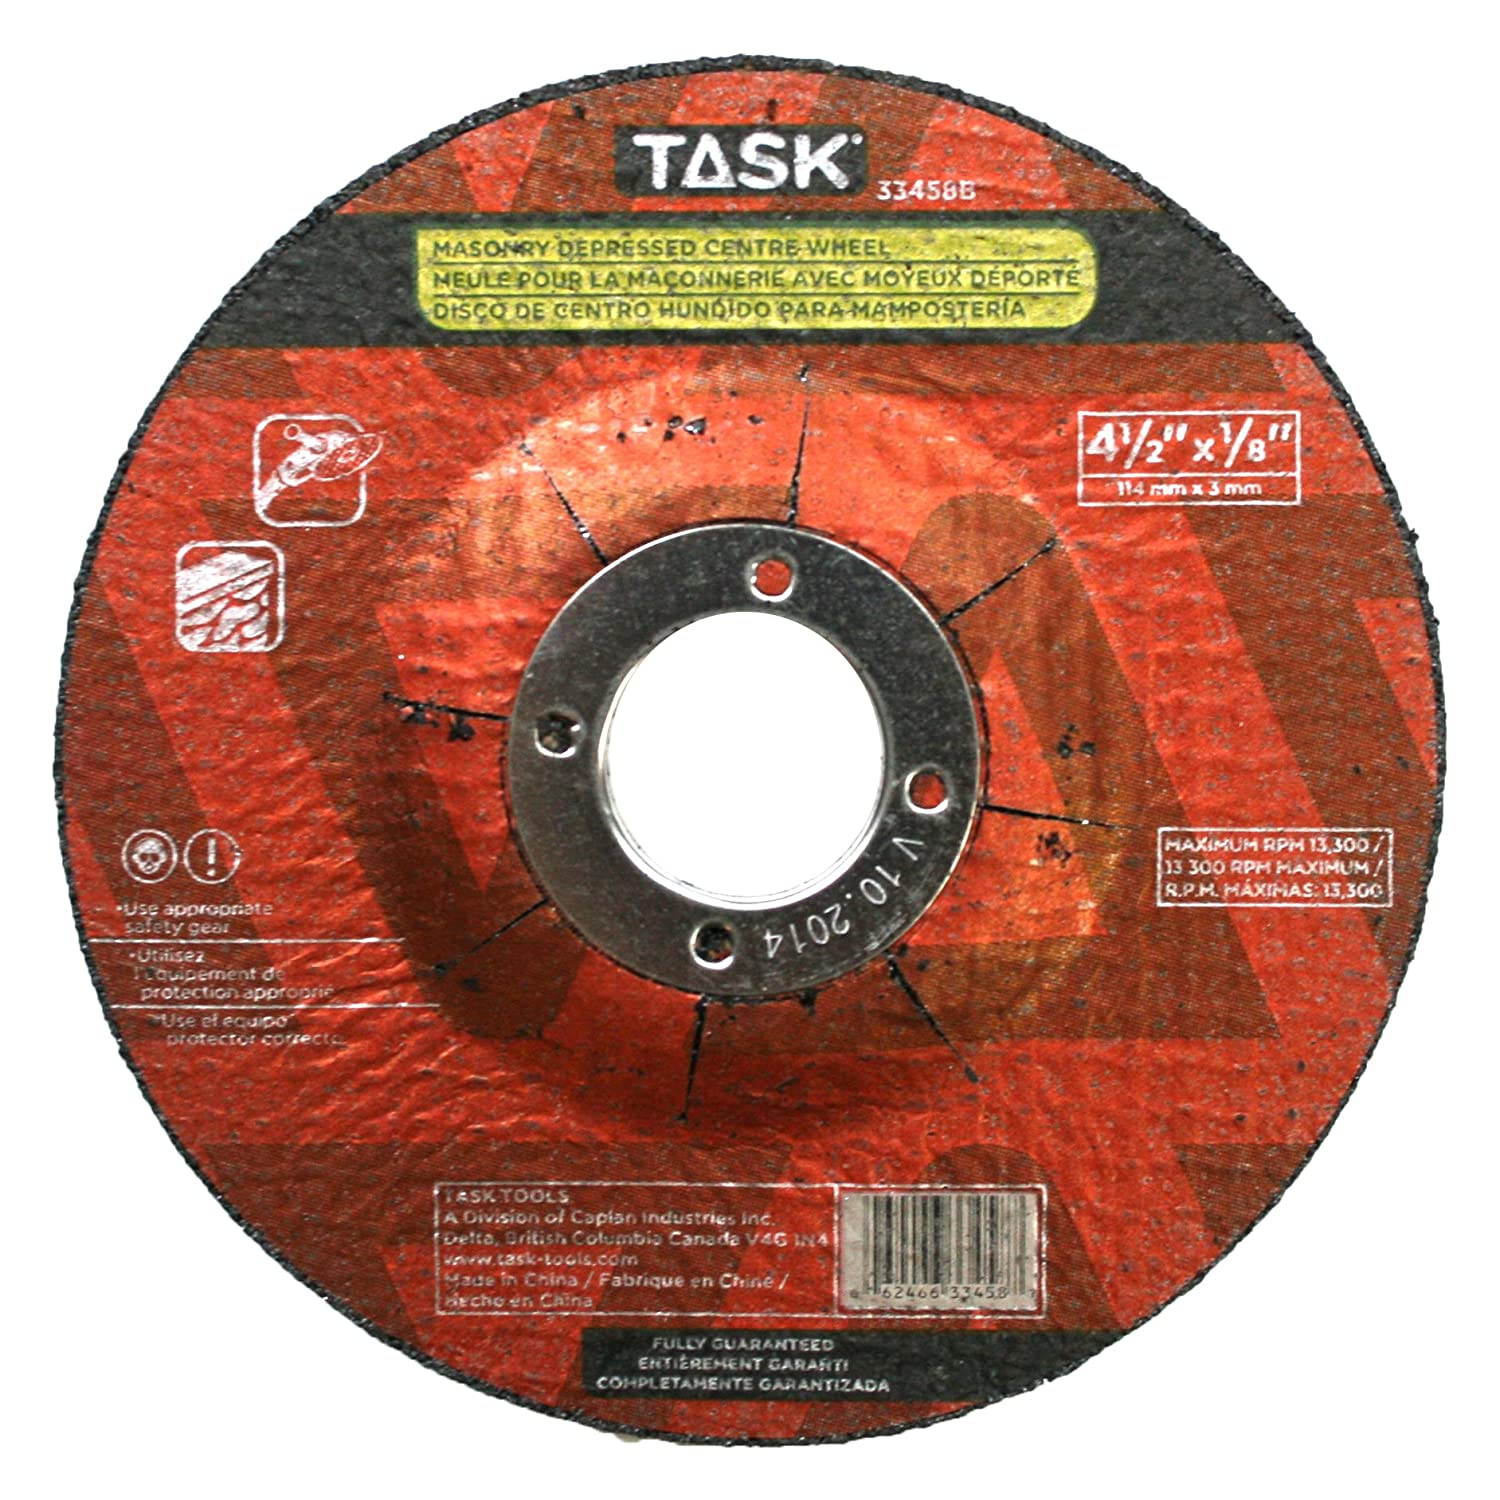 Task Tools 33458B 4-1//2-Inch by 1//8-Inch Masonry Cutting Wheel with Depressed Center LCM Team Task Tools